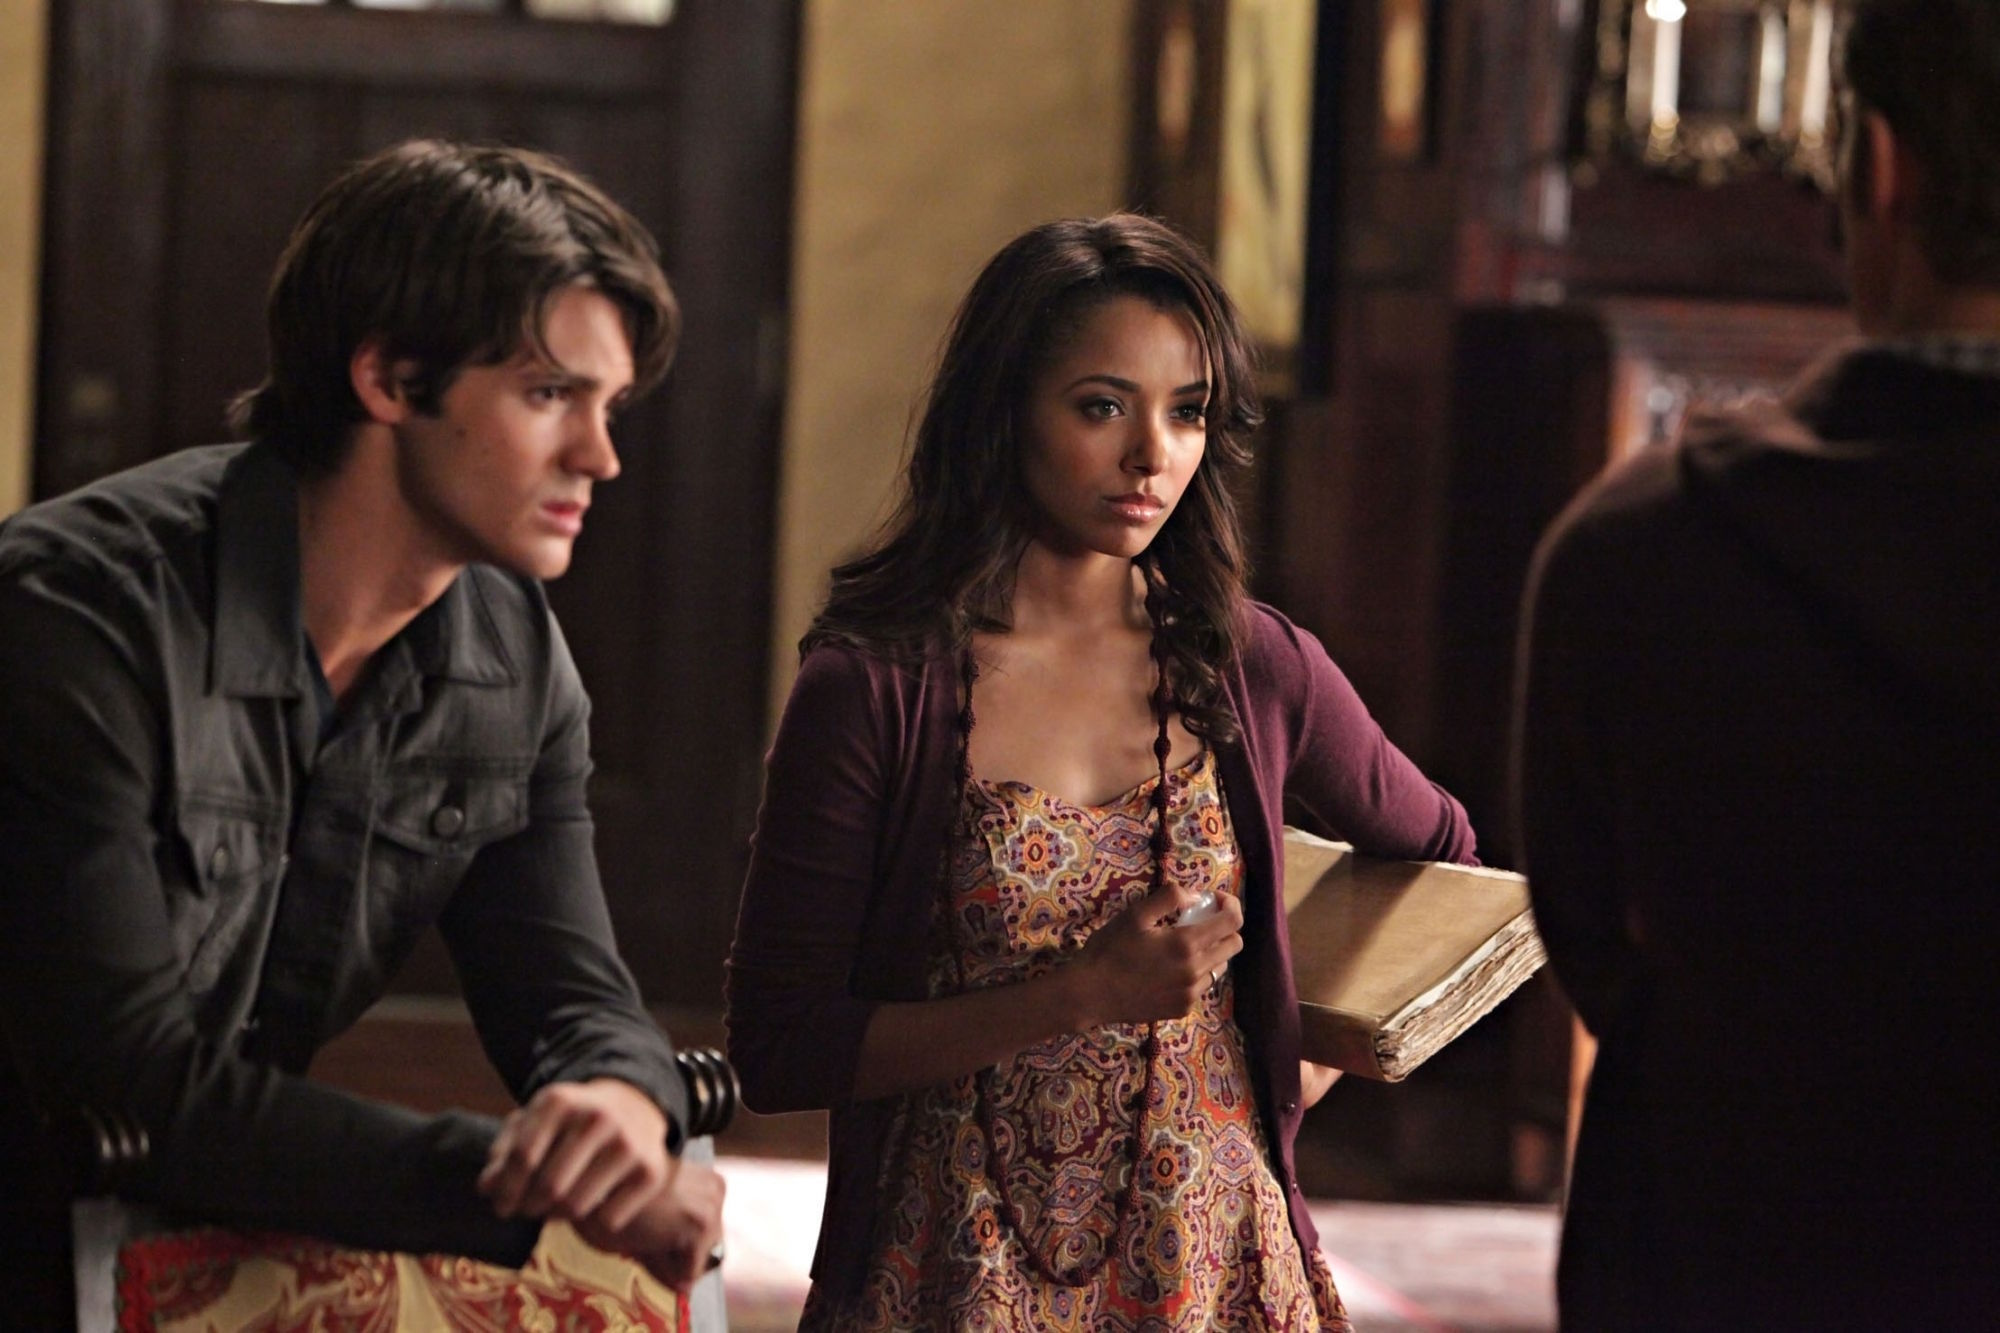 http://images4.fanpop.com/image/photos/16200000/2-07-Masquerade-the-vampire-diaries-16220730-2000-1333.jpg